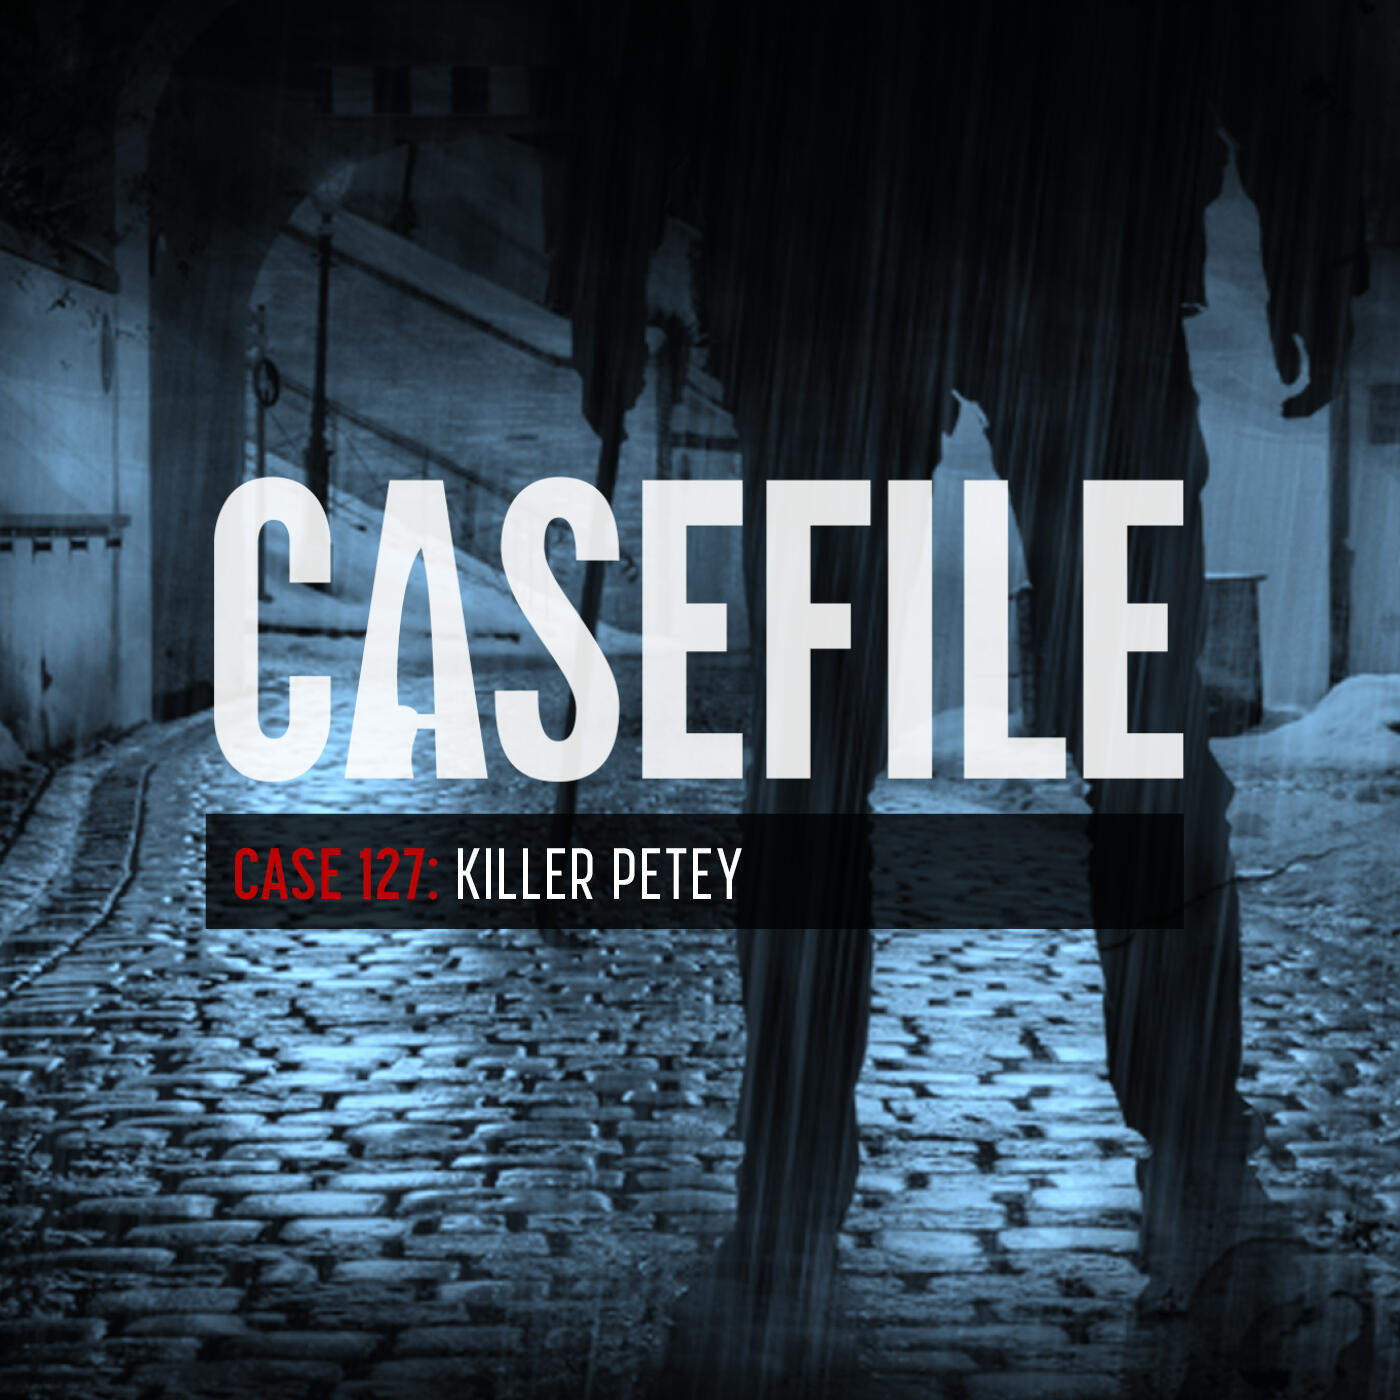 Case 127: Killer Petey